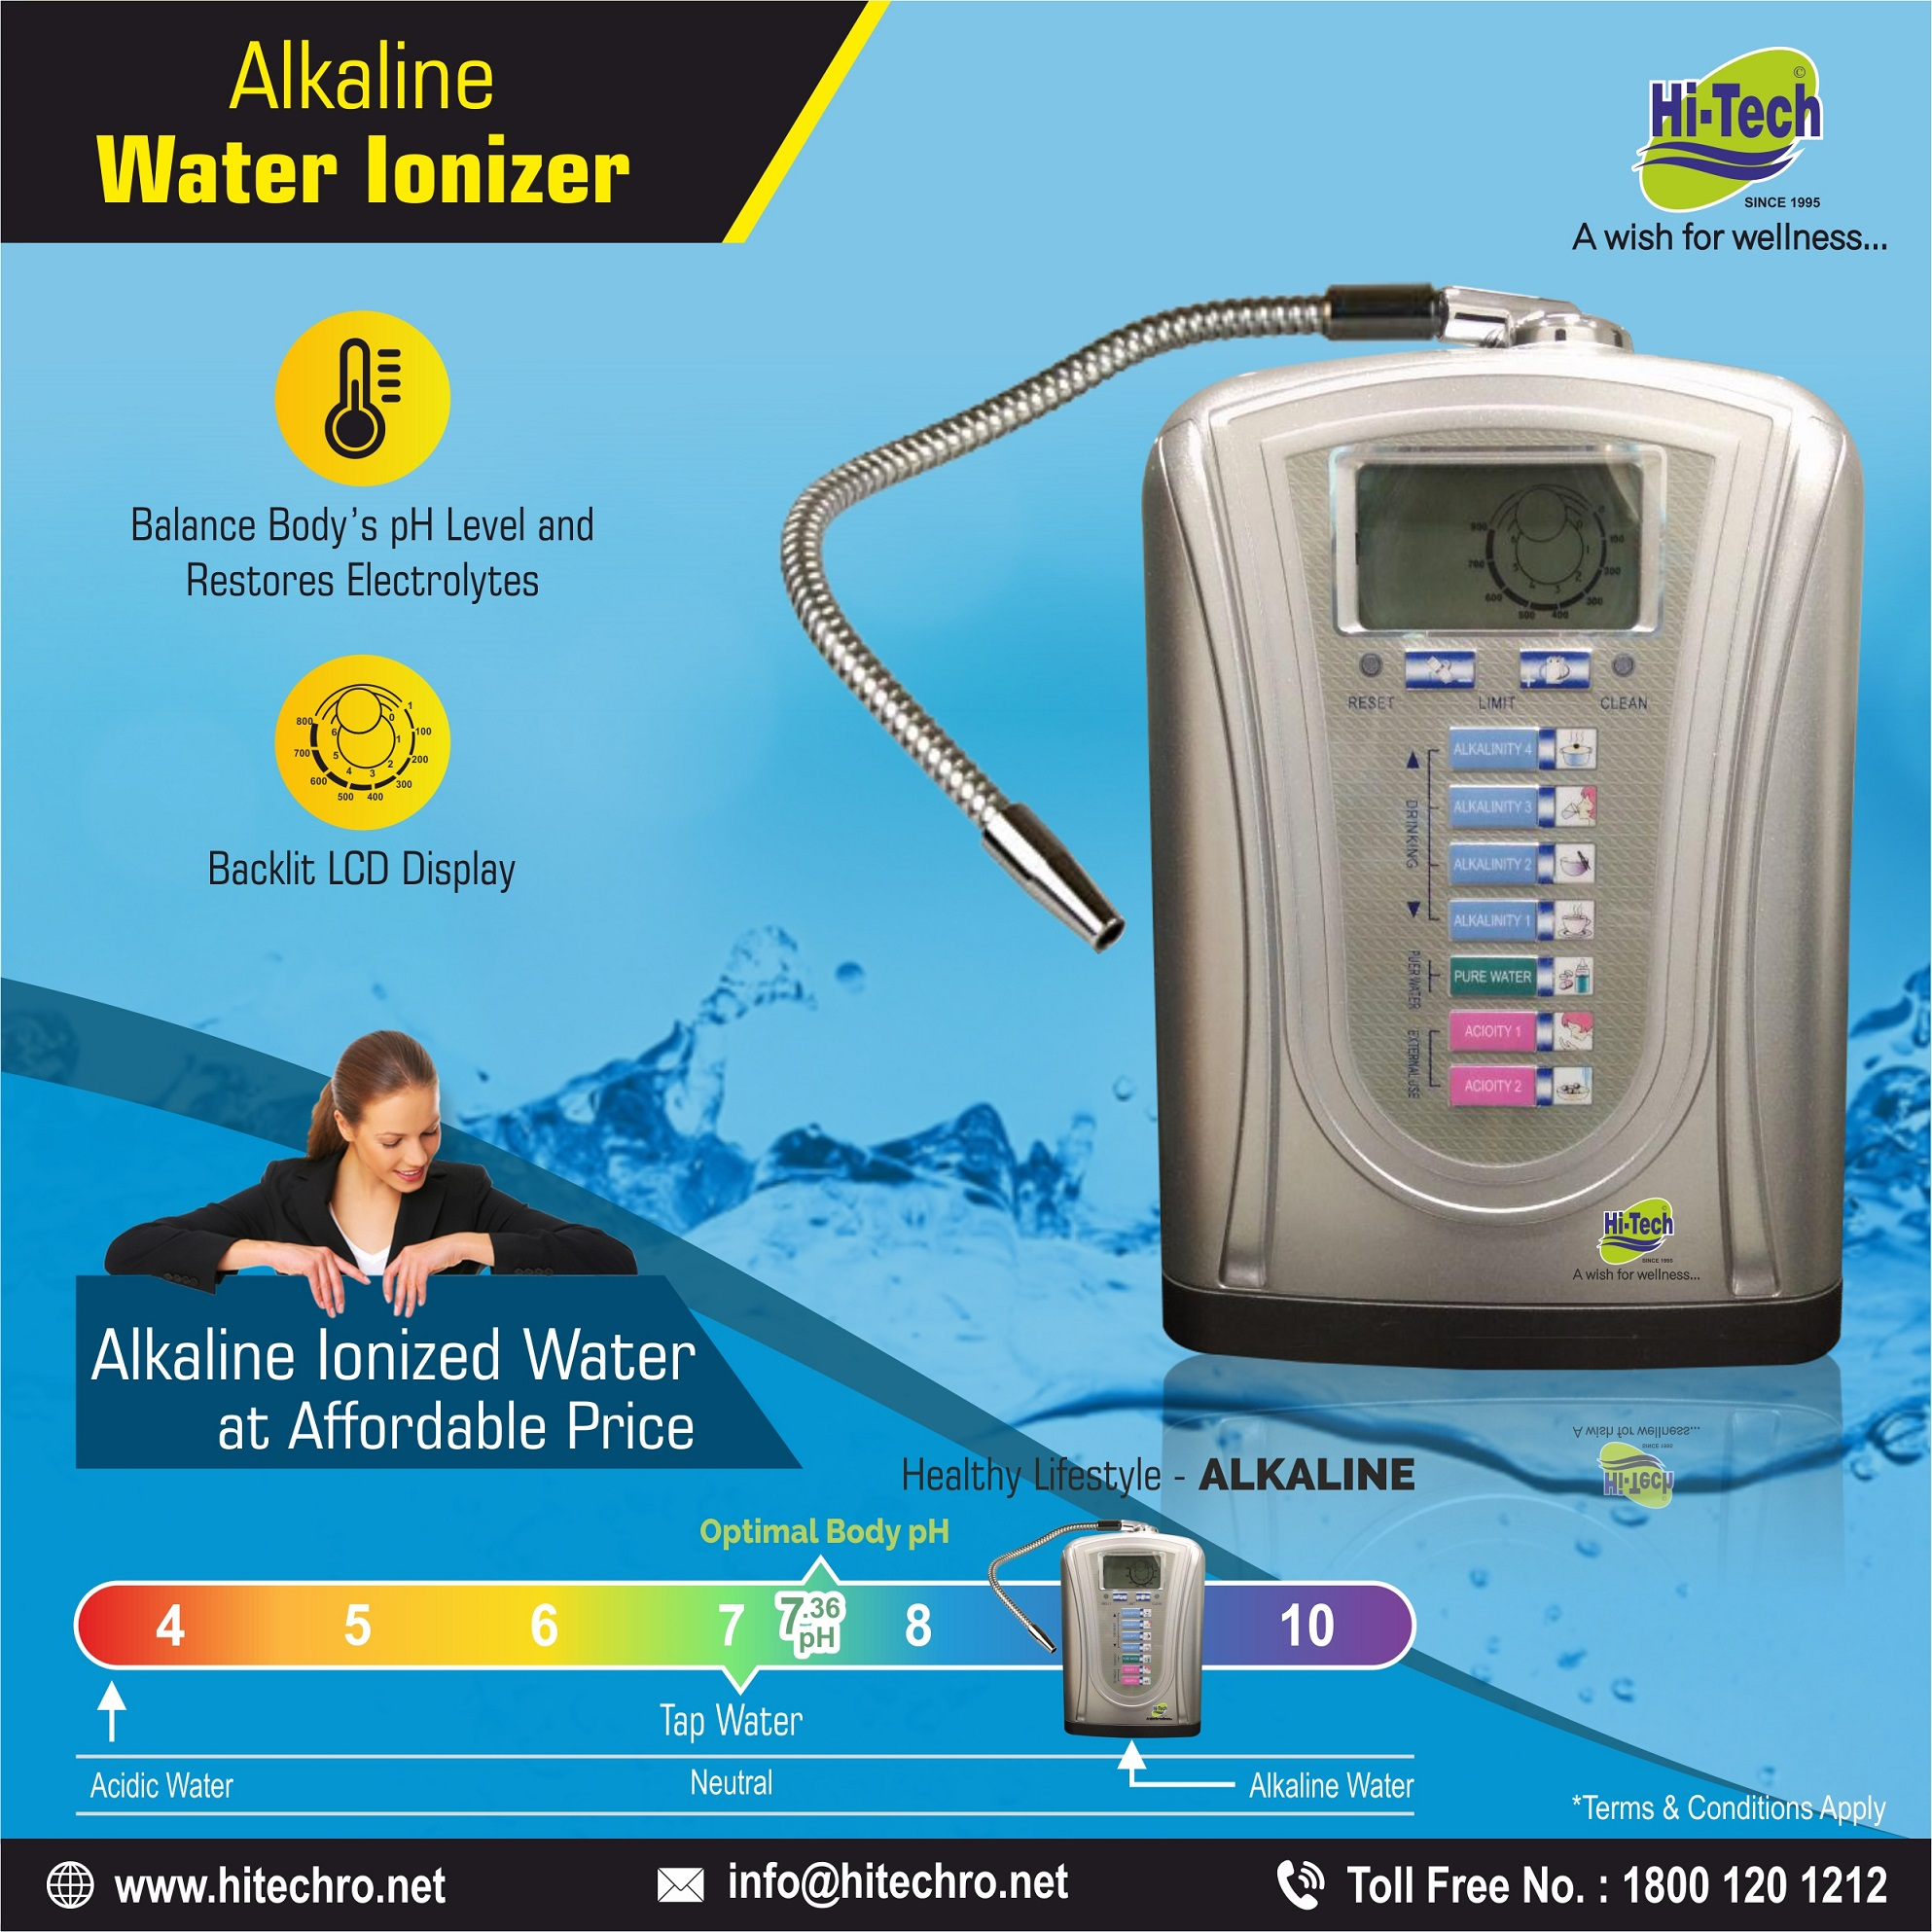 Alkaline Water: Health Benefits, Safety and possible side Effects